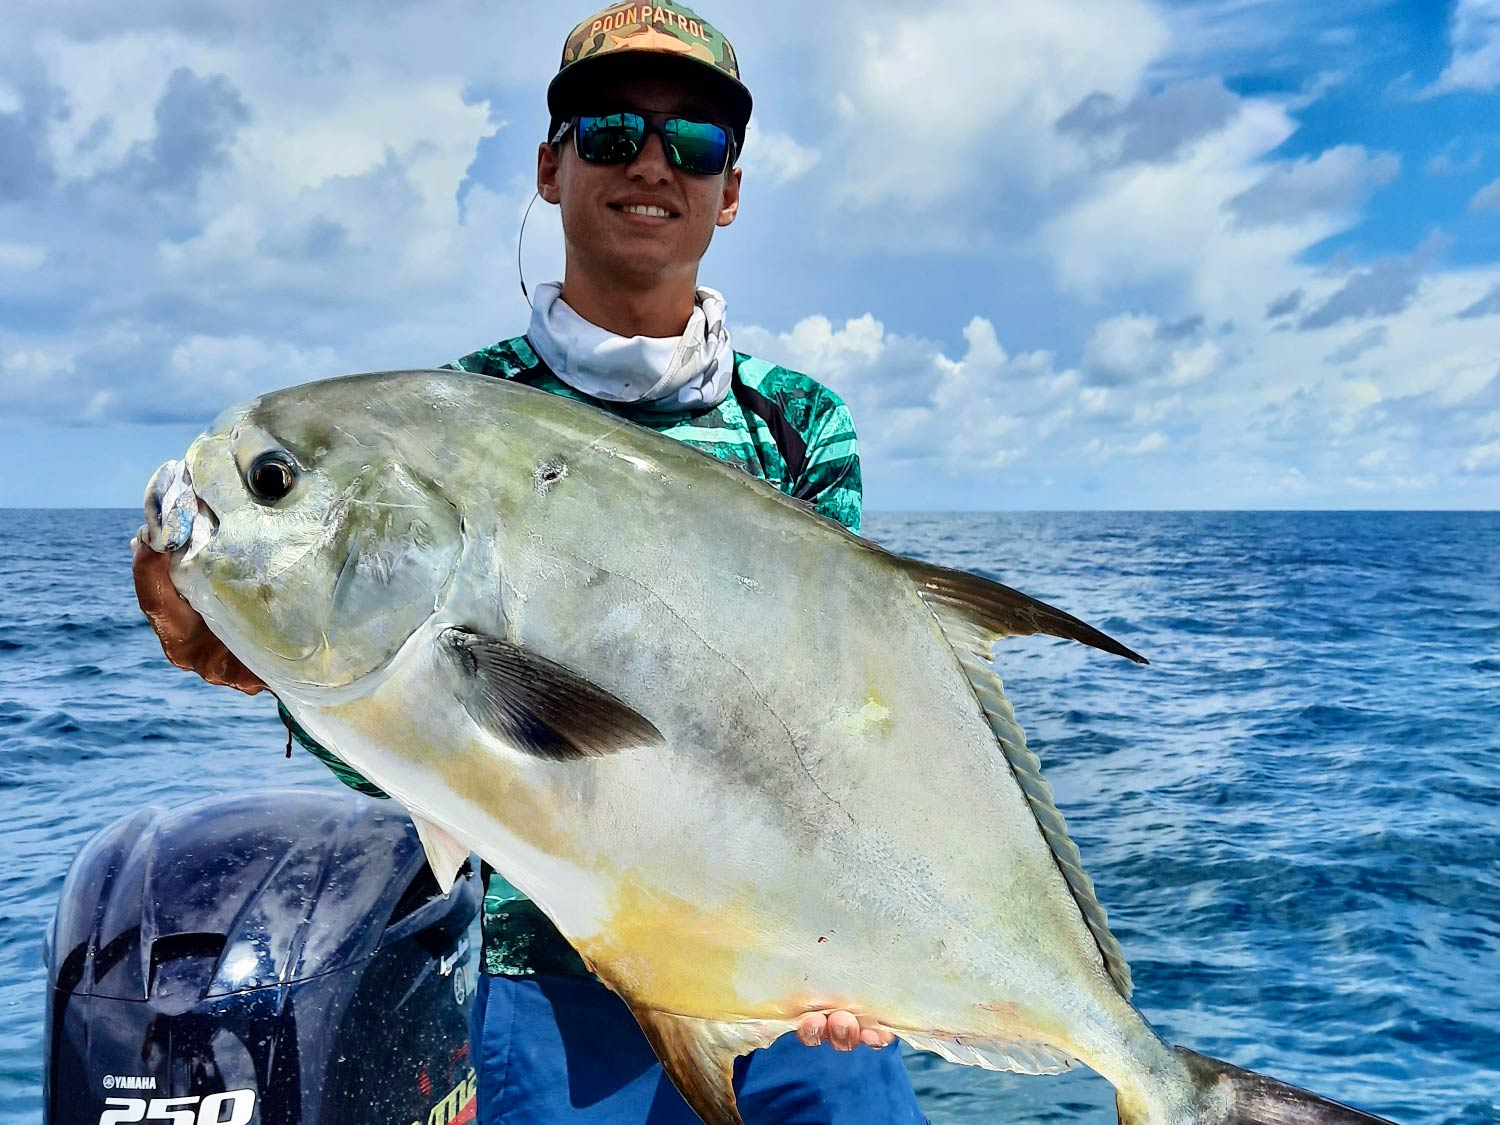 A smiling angler with a cap and sunglasses holding a very big Permit fish